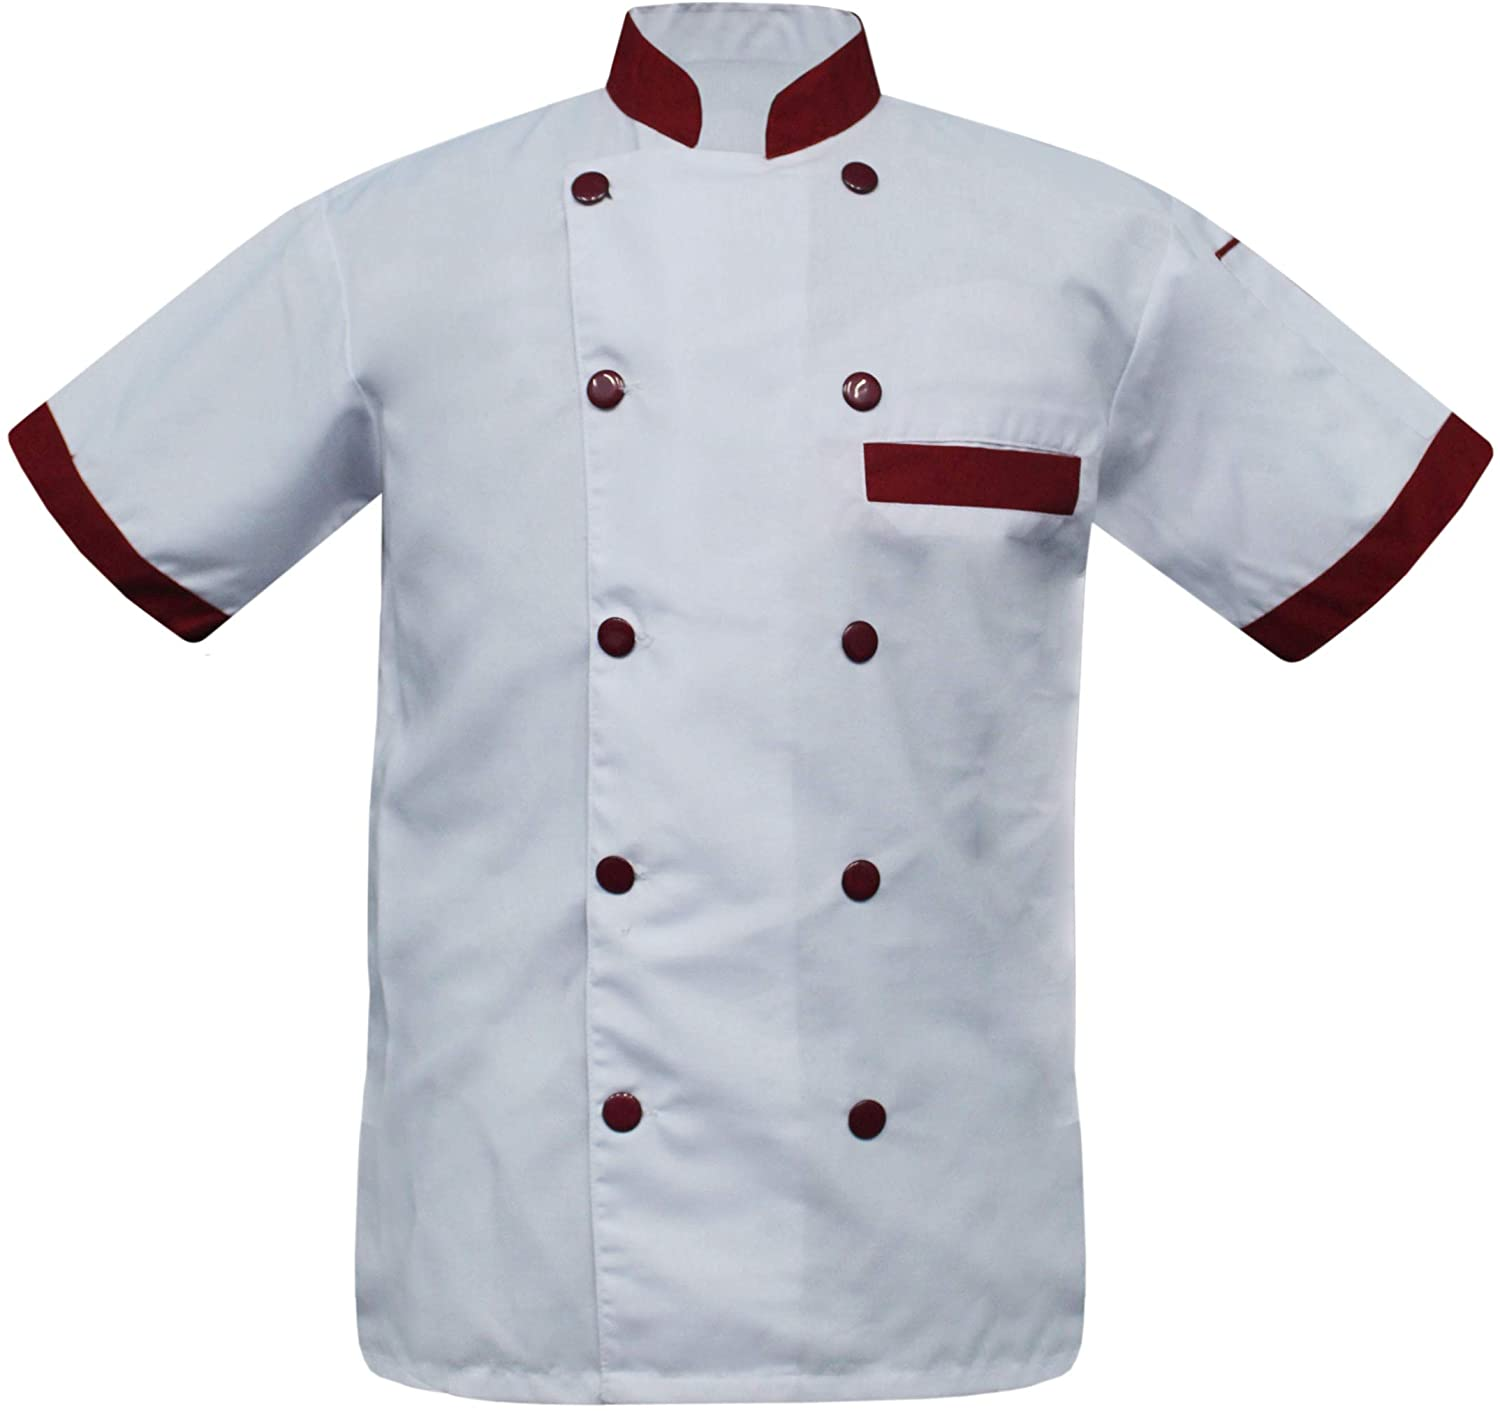 White Vend Produced CF-97 Men's White Chef Jacket Collar in Multi Colors